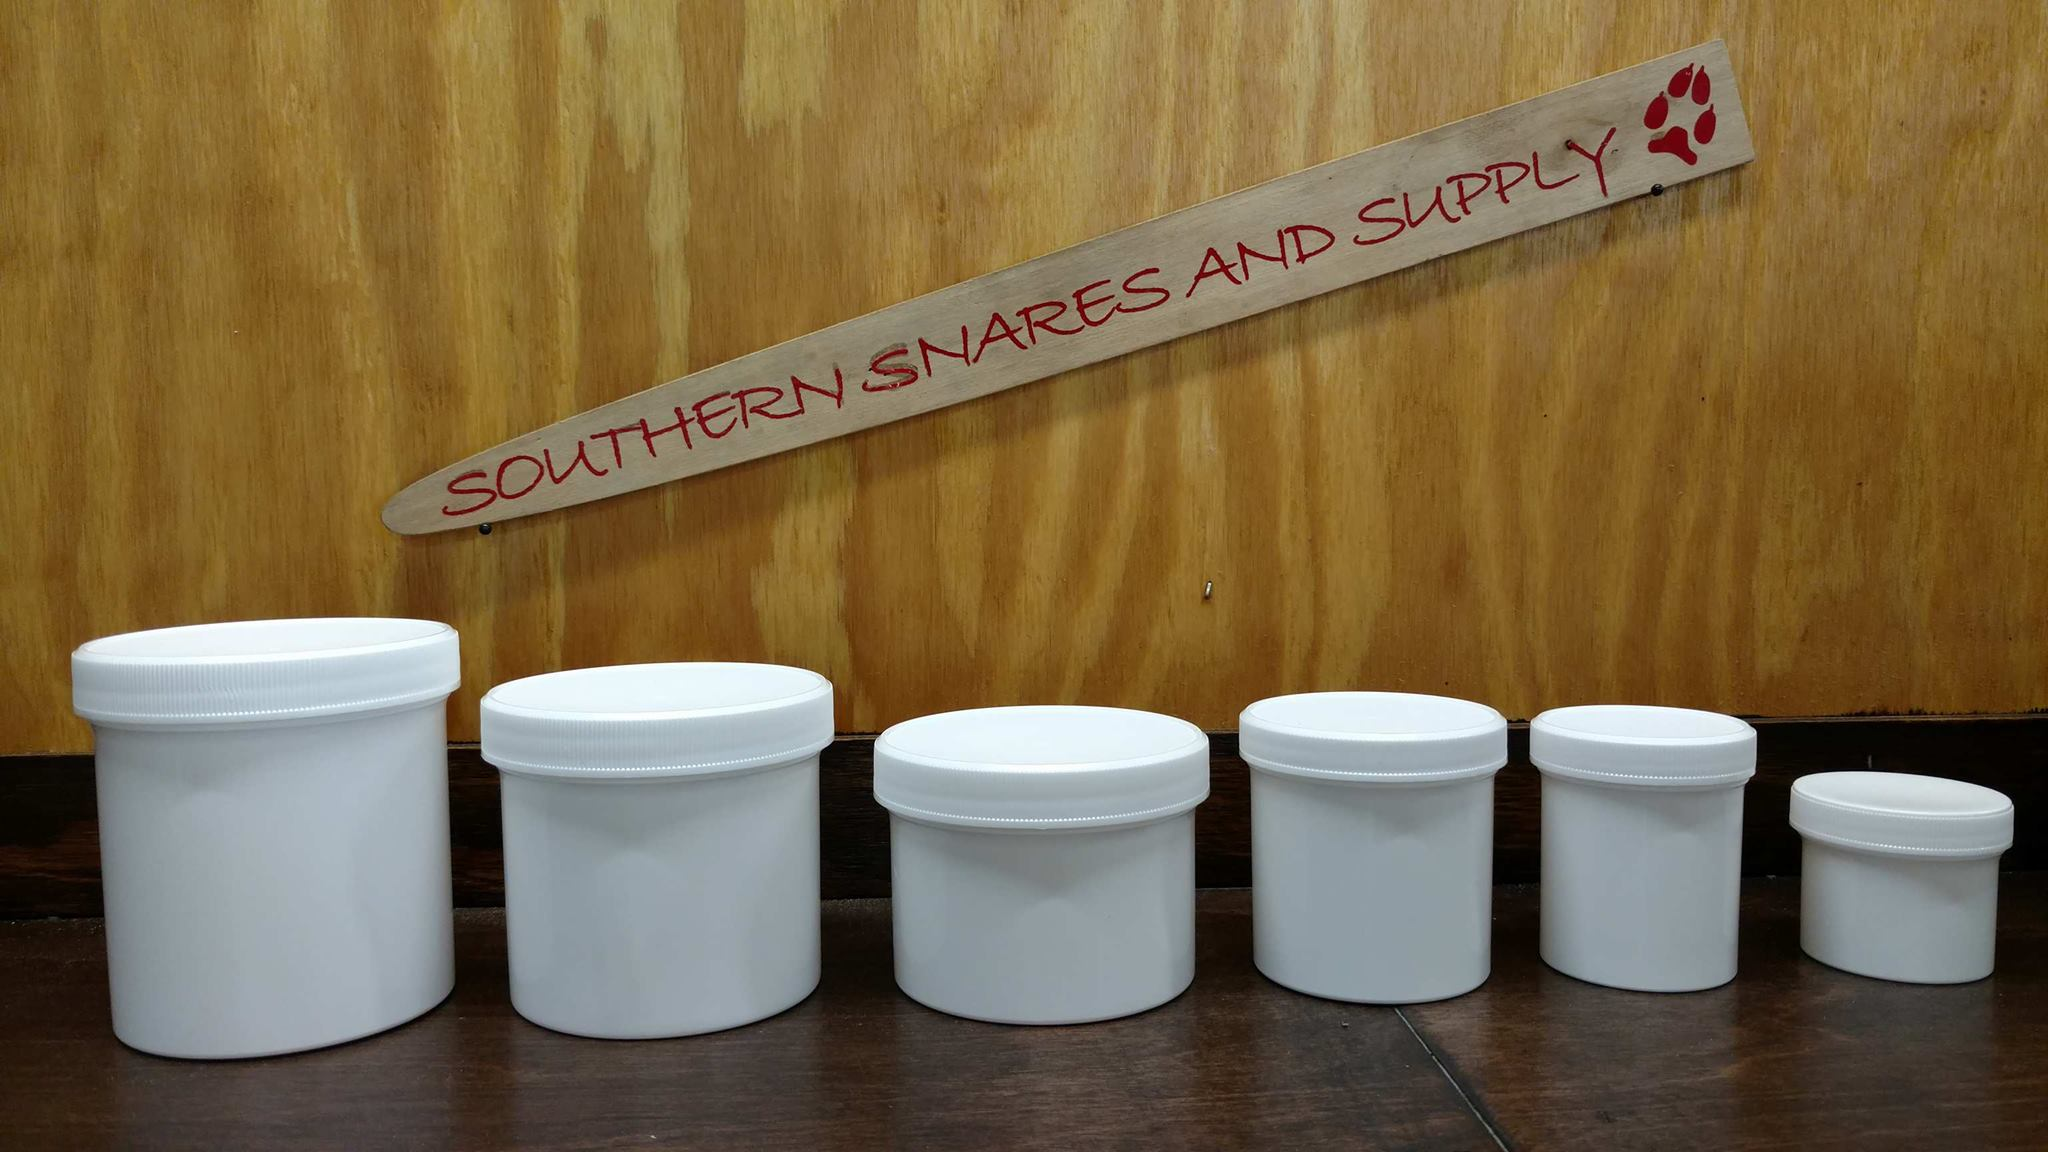 WHITE PLASTIC JARS - Southern Snares & Supply